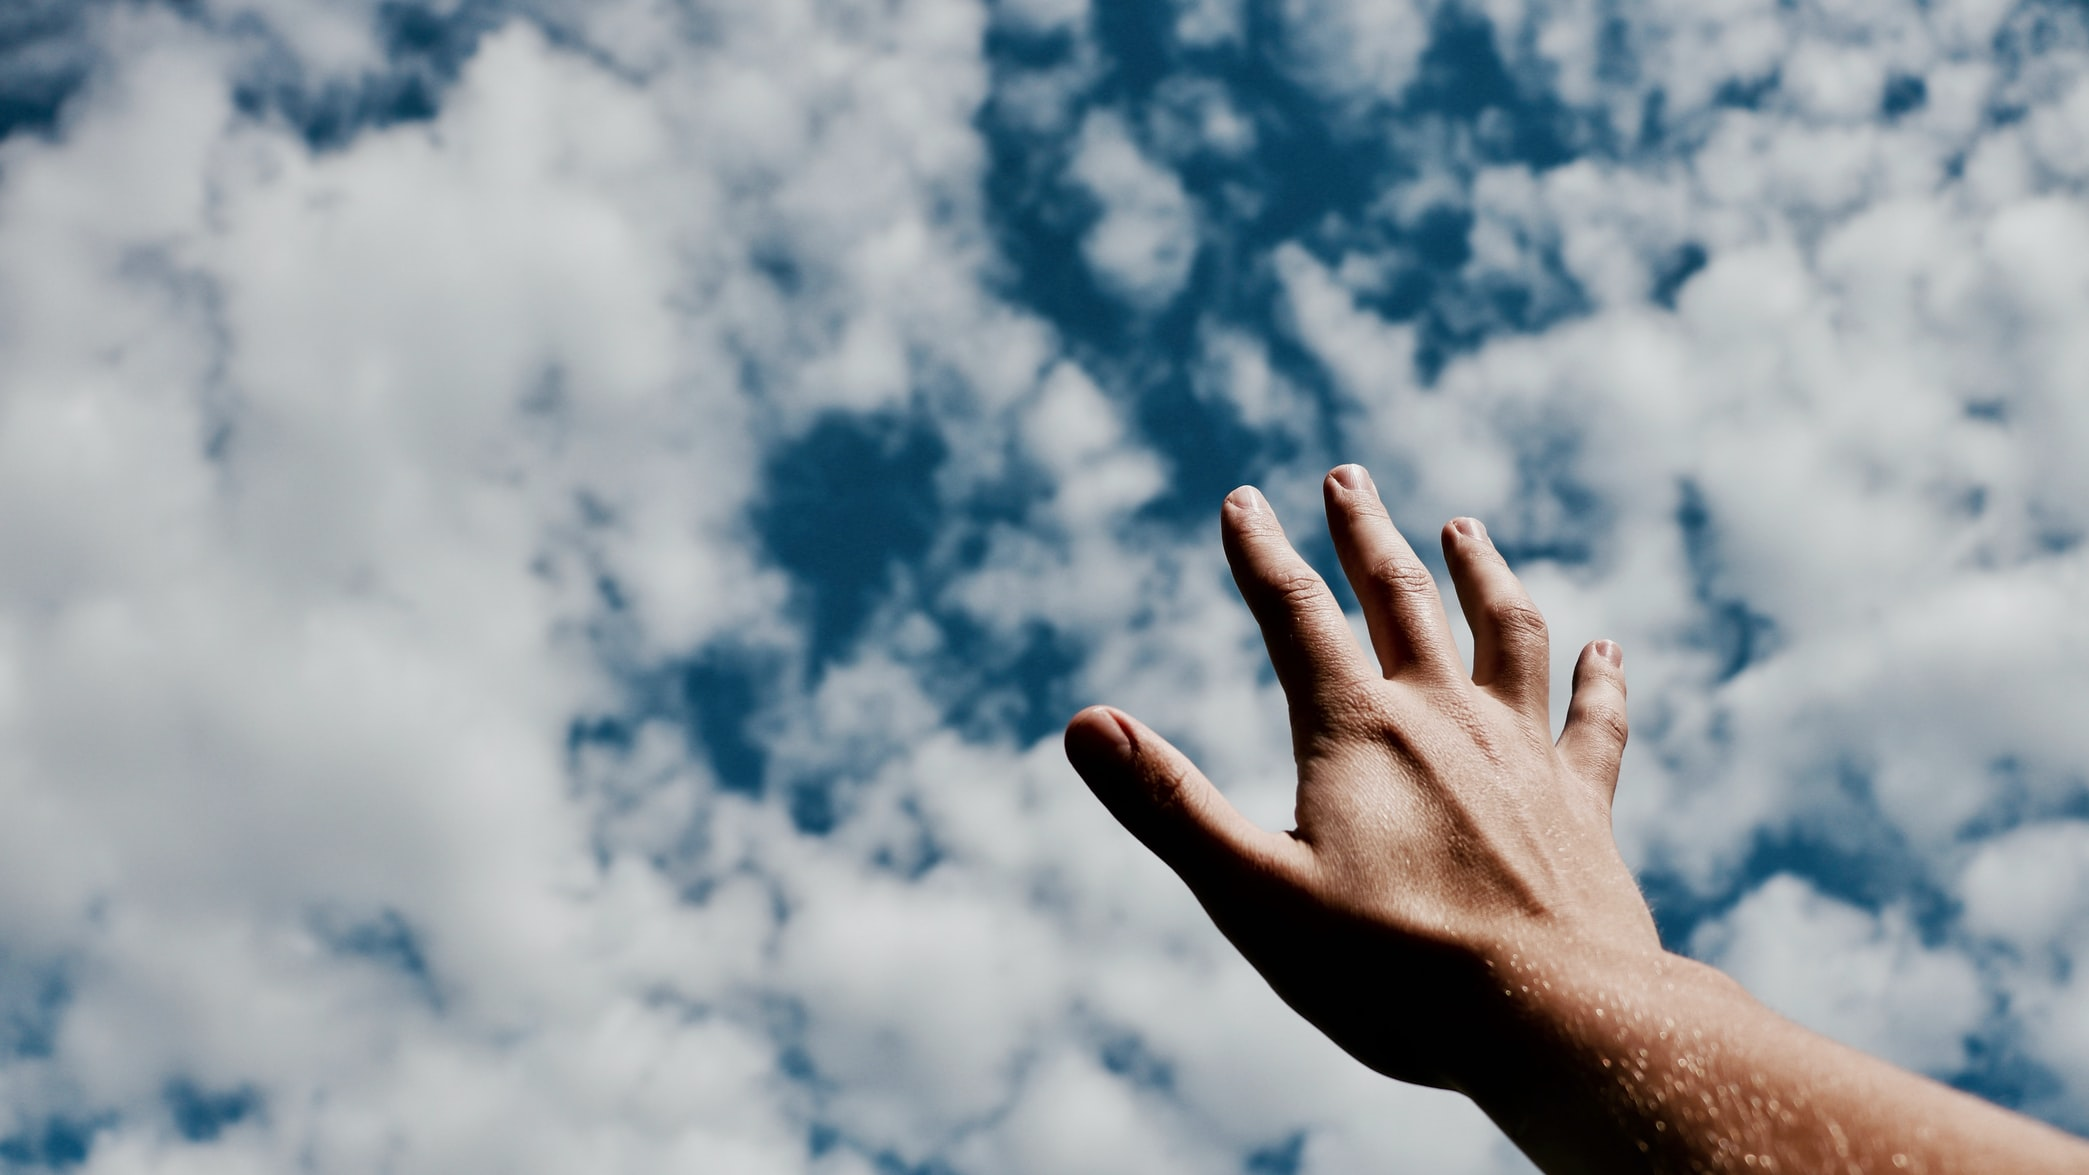 Hand touching the sky